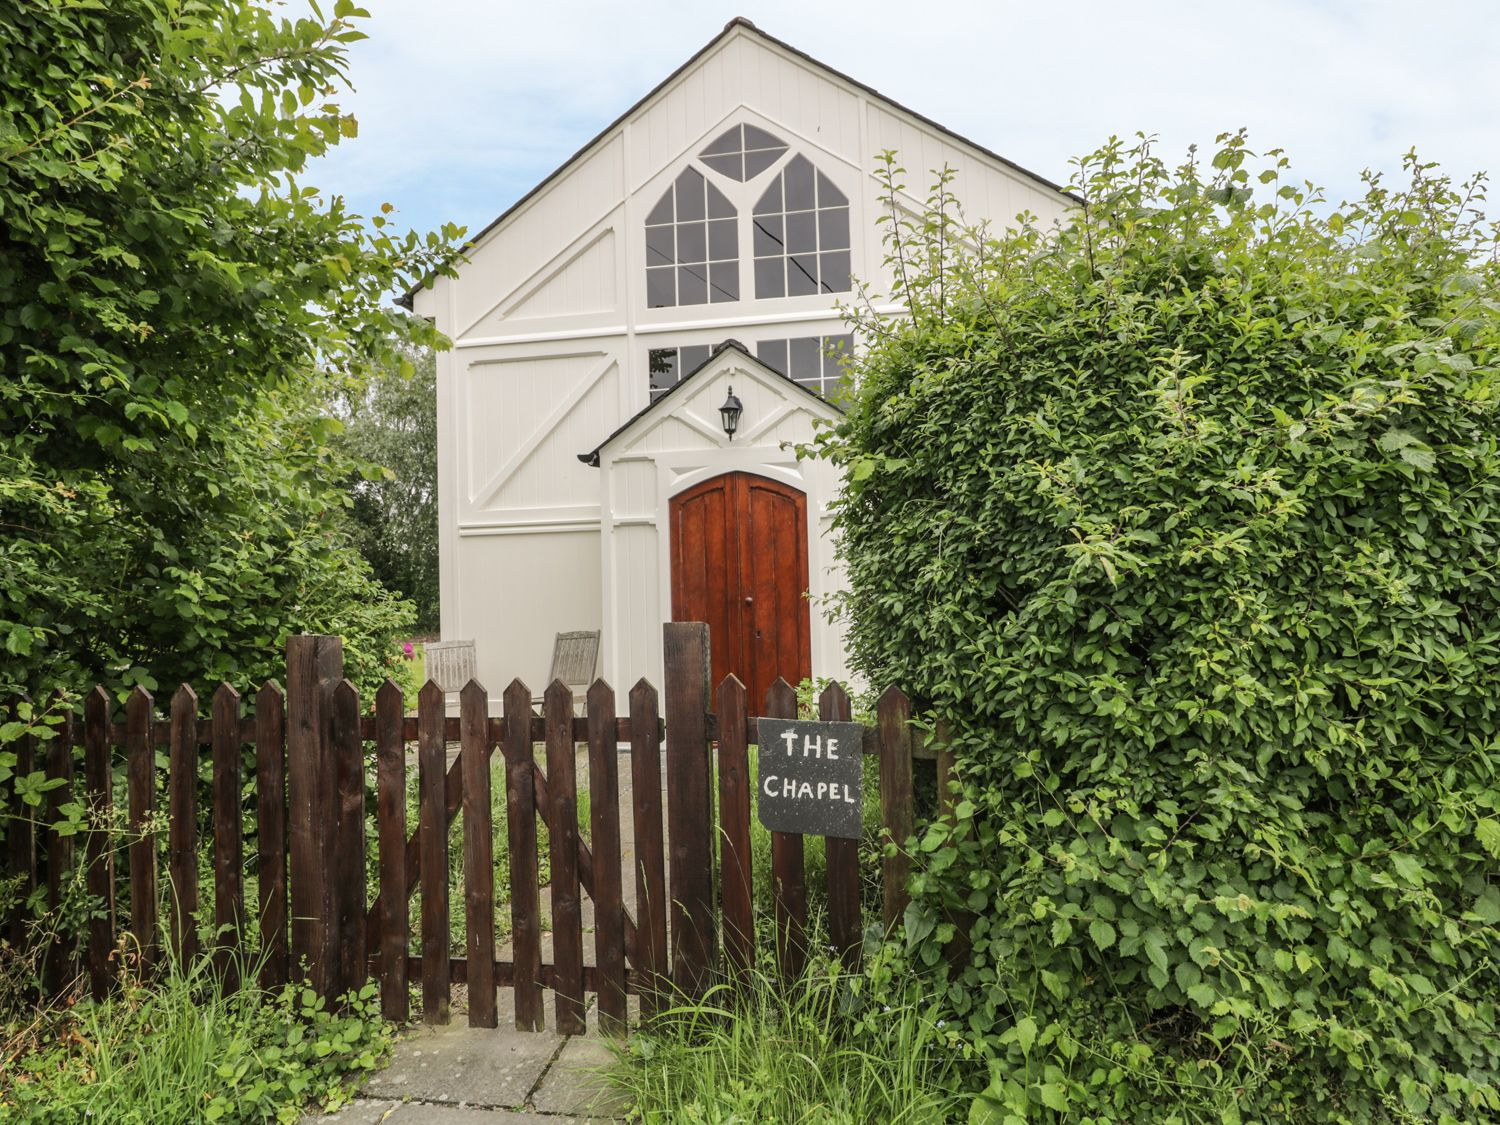 The Old Chapel, Huntingford